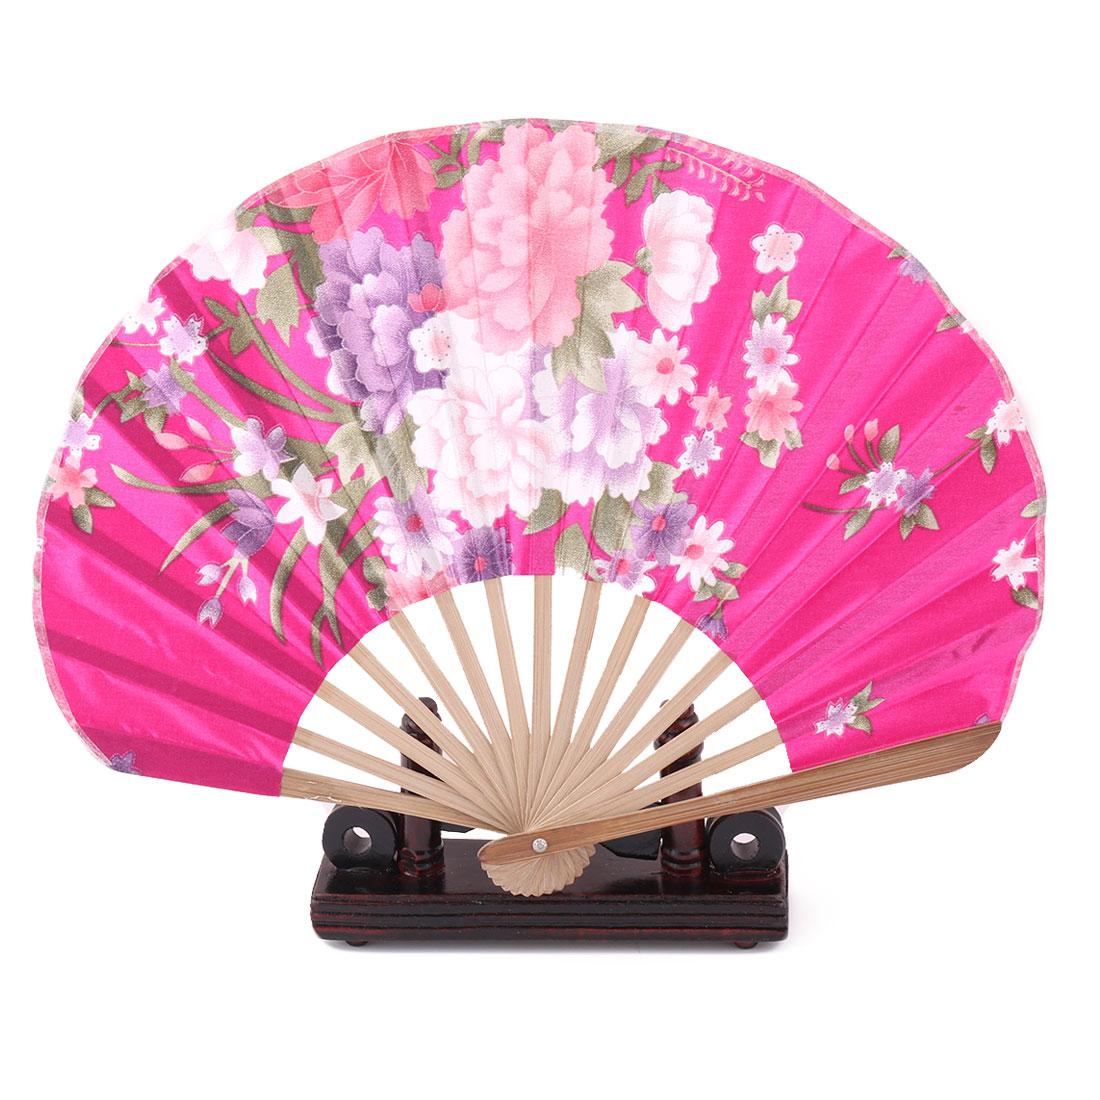 Home Wood Flower Print Chinese Style Handheld Folding Fan Display Holder Fuchsia 2 in 1